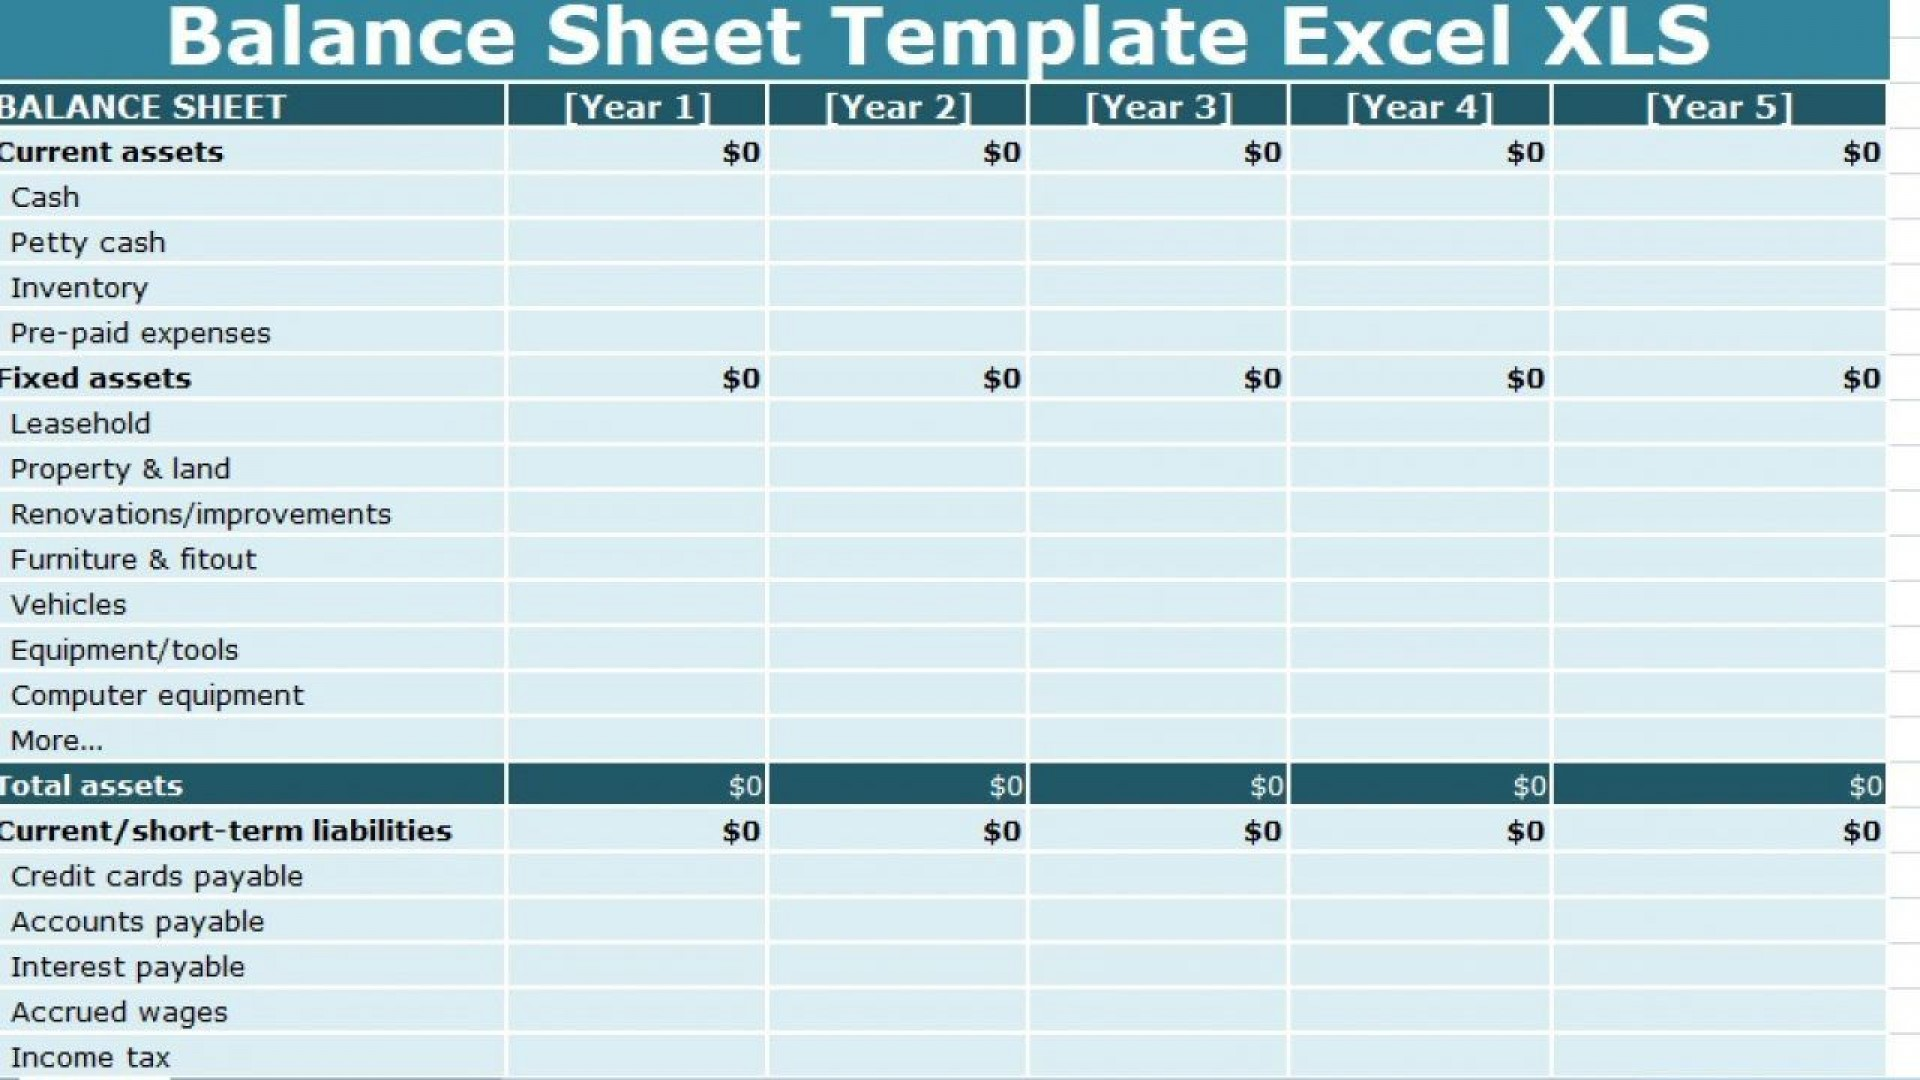 005 Breathtaking Busines Balance Sheet Template High Definition  Word Excel Small Sample1920